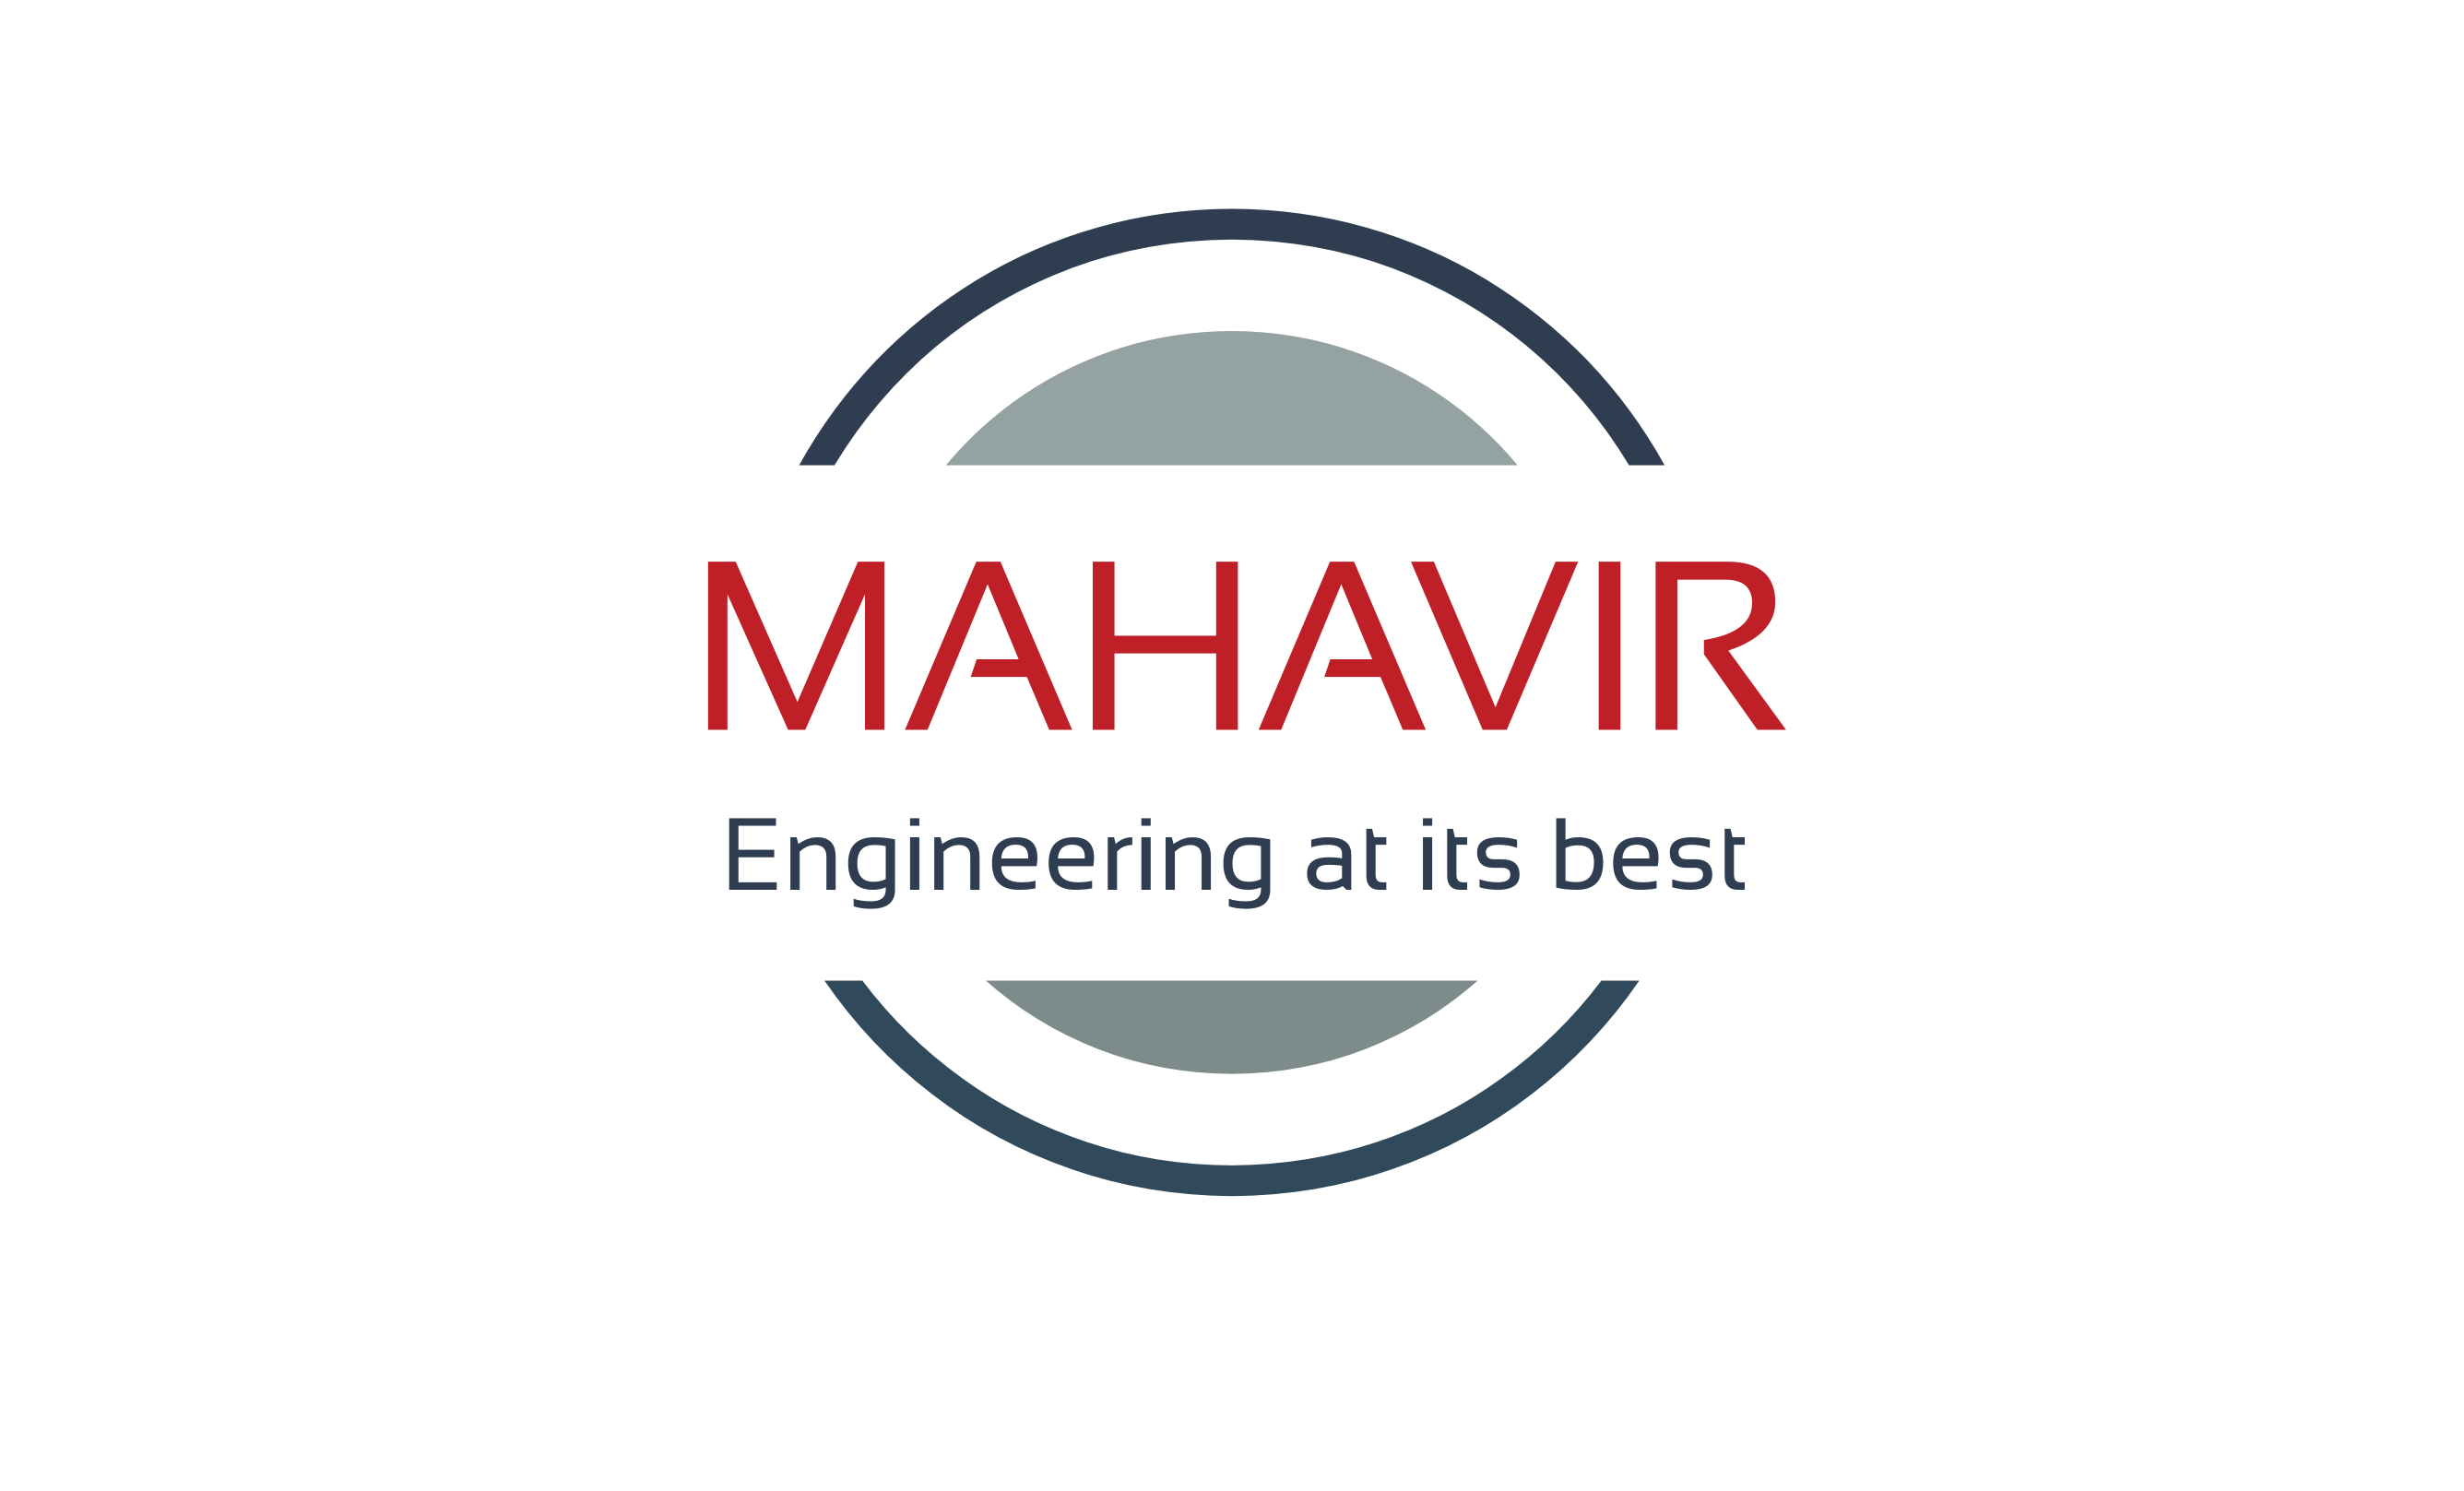 Mahavir Industrial Corporation